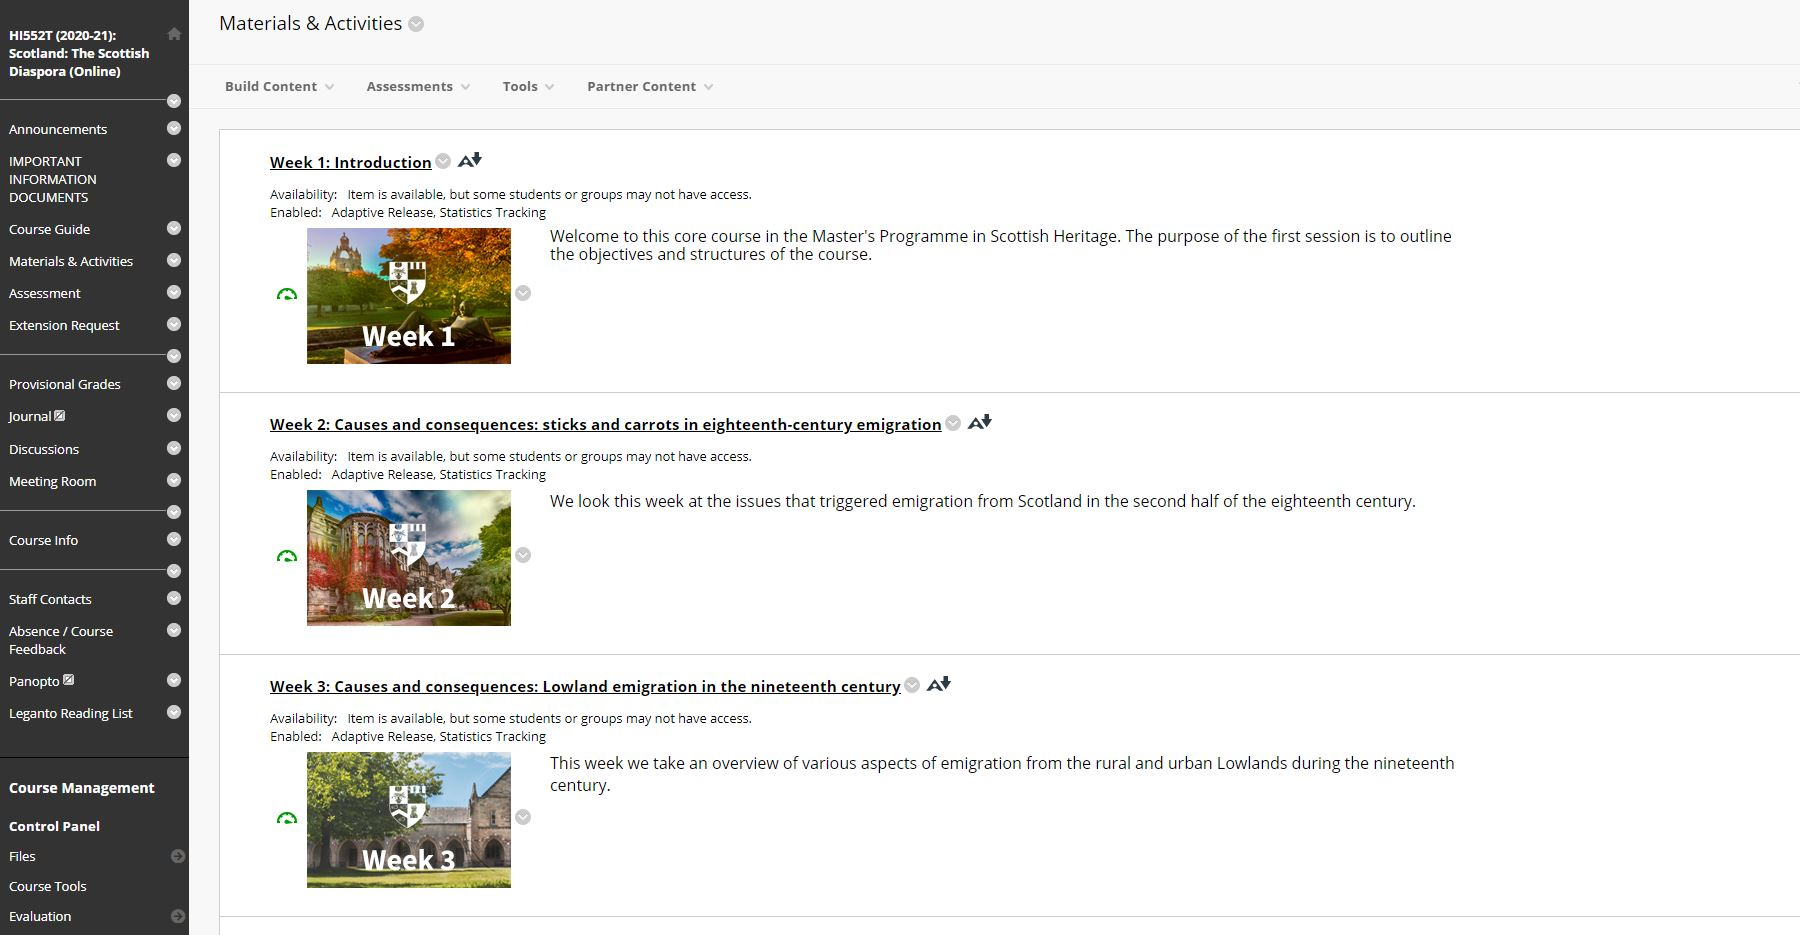 A screengrab of the front page of an online module landing page. Three weeks are shown, each with a thumbnail image, title and brief description of the topic for discussion.